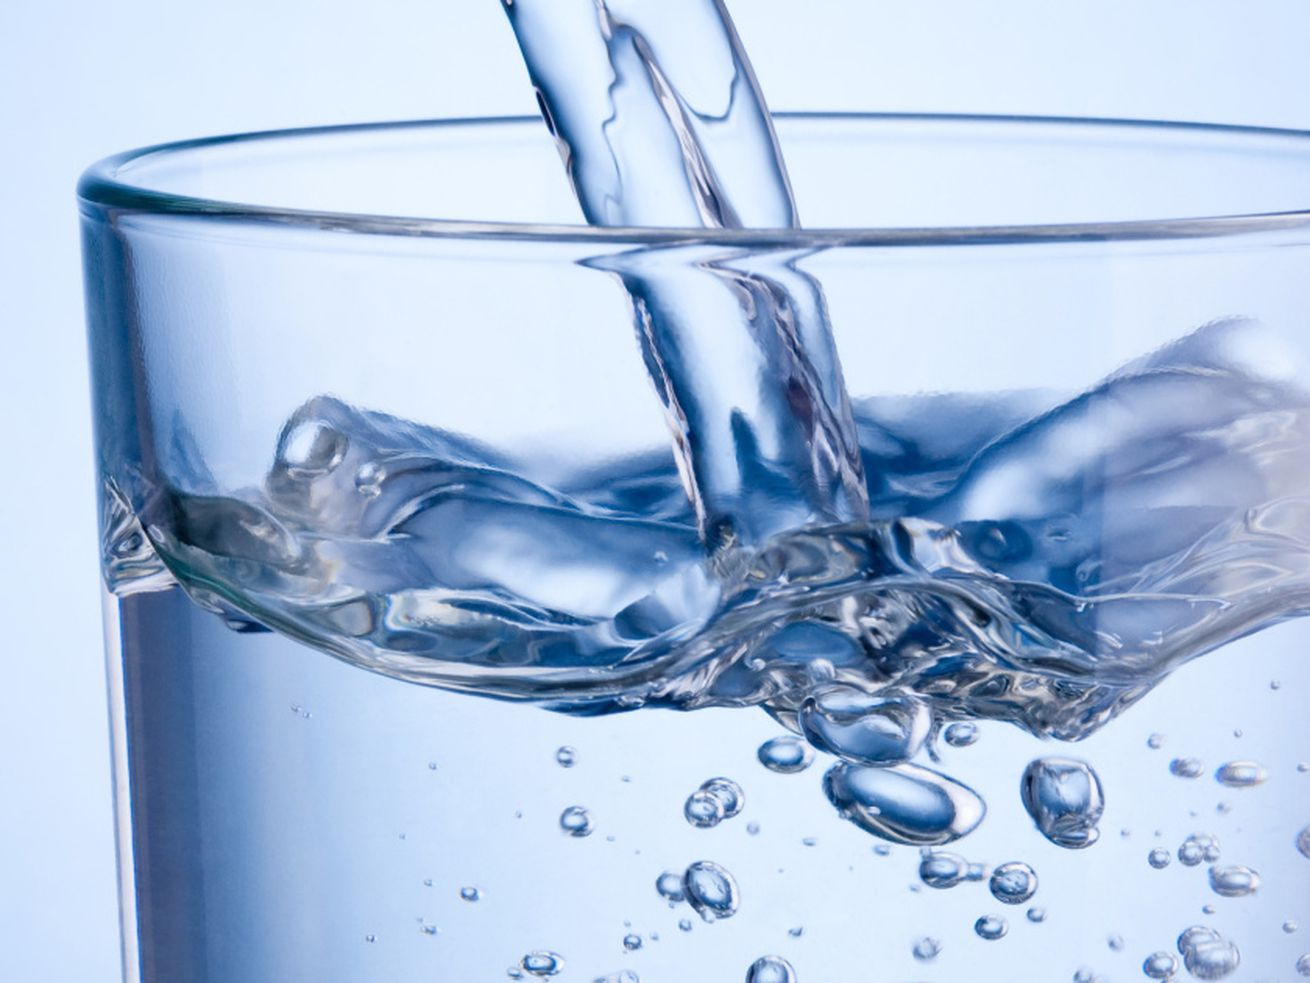 South suburban residents were advised to use bottled water as Aqua Illinois worked to flush their entire water systems.